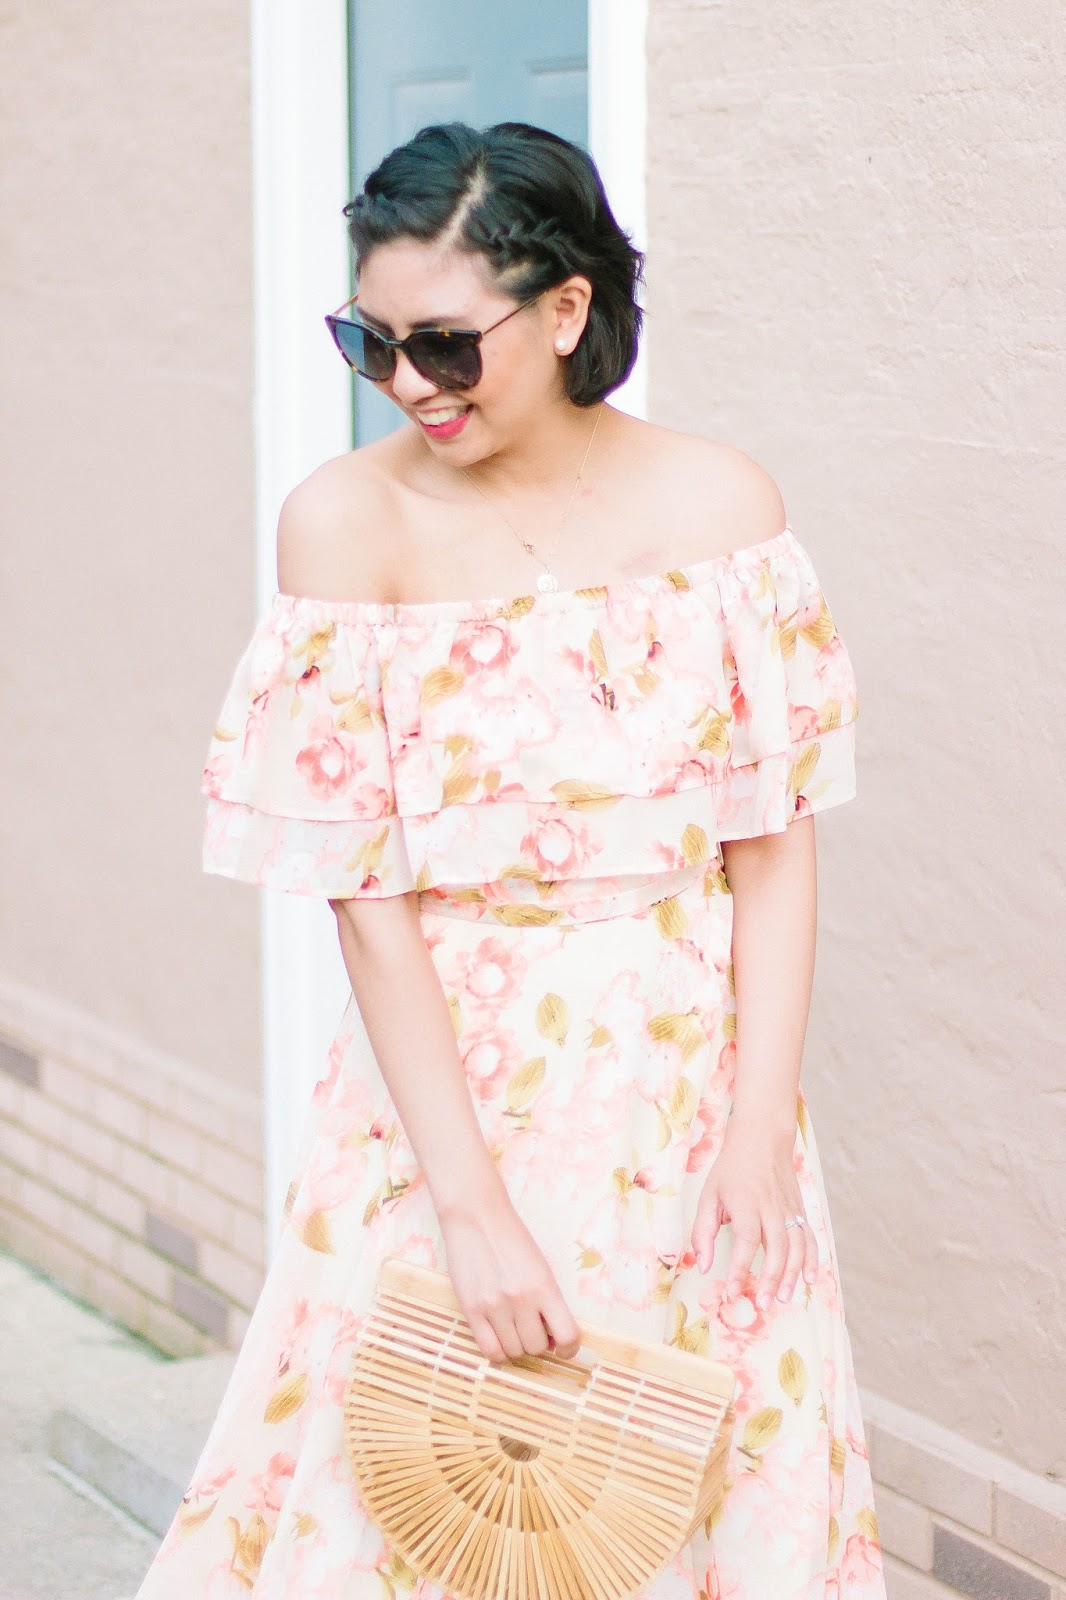 What Fashion Blogging Has Done For Me